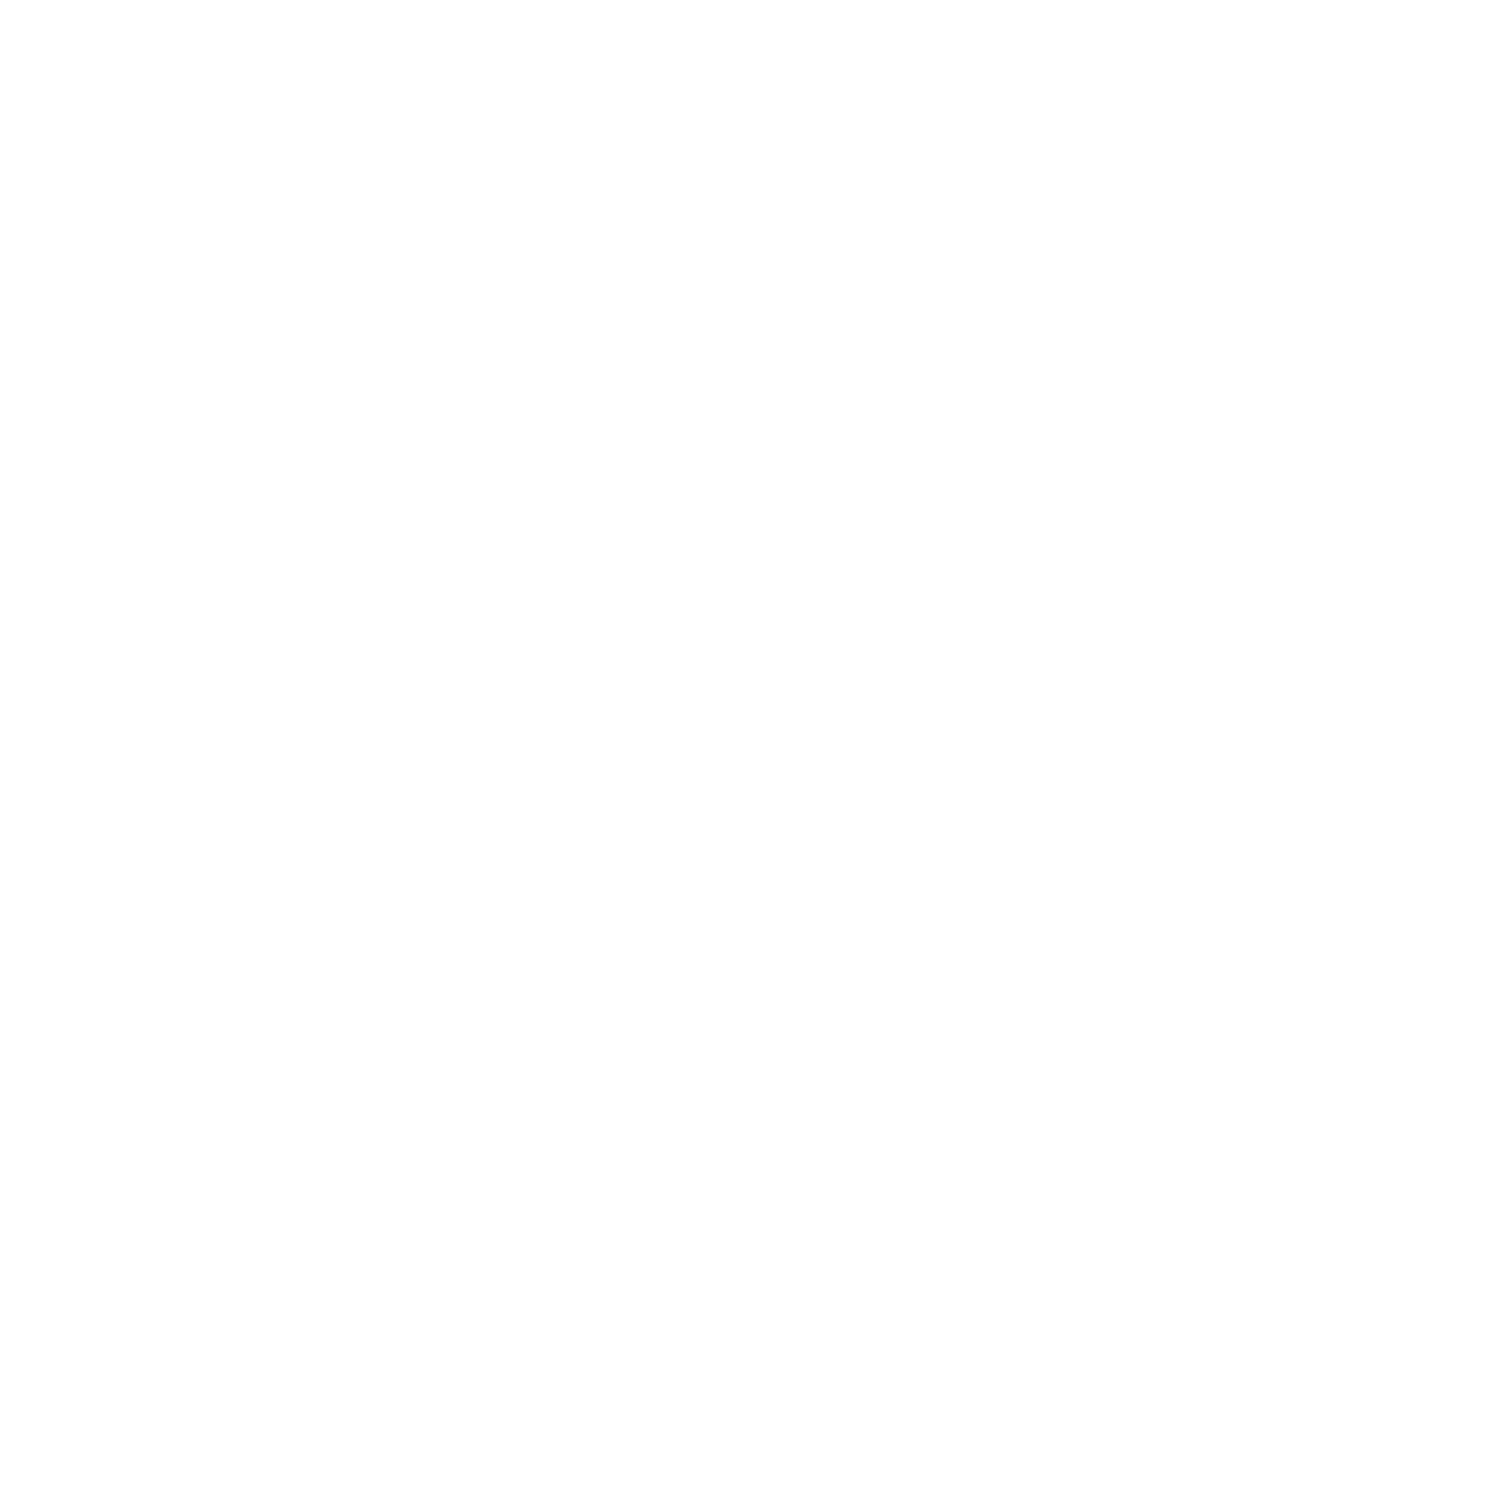 Adams Photography